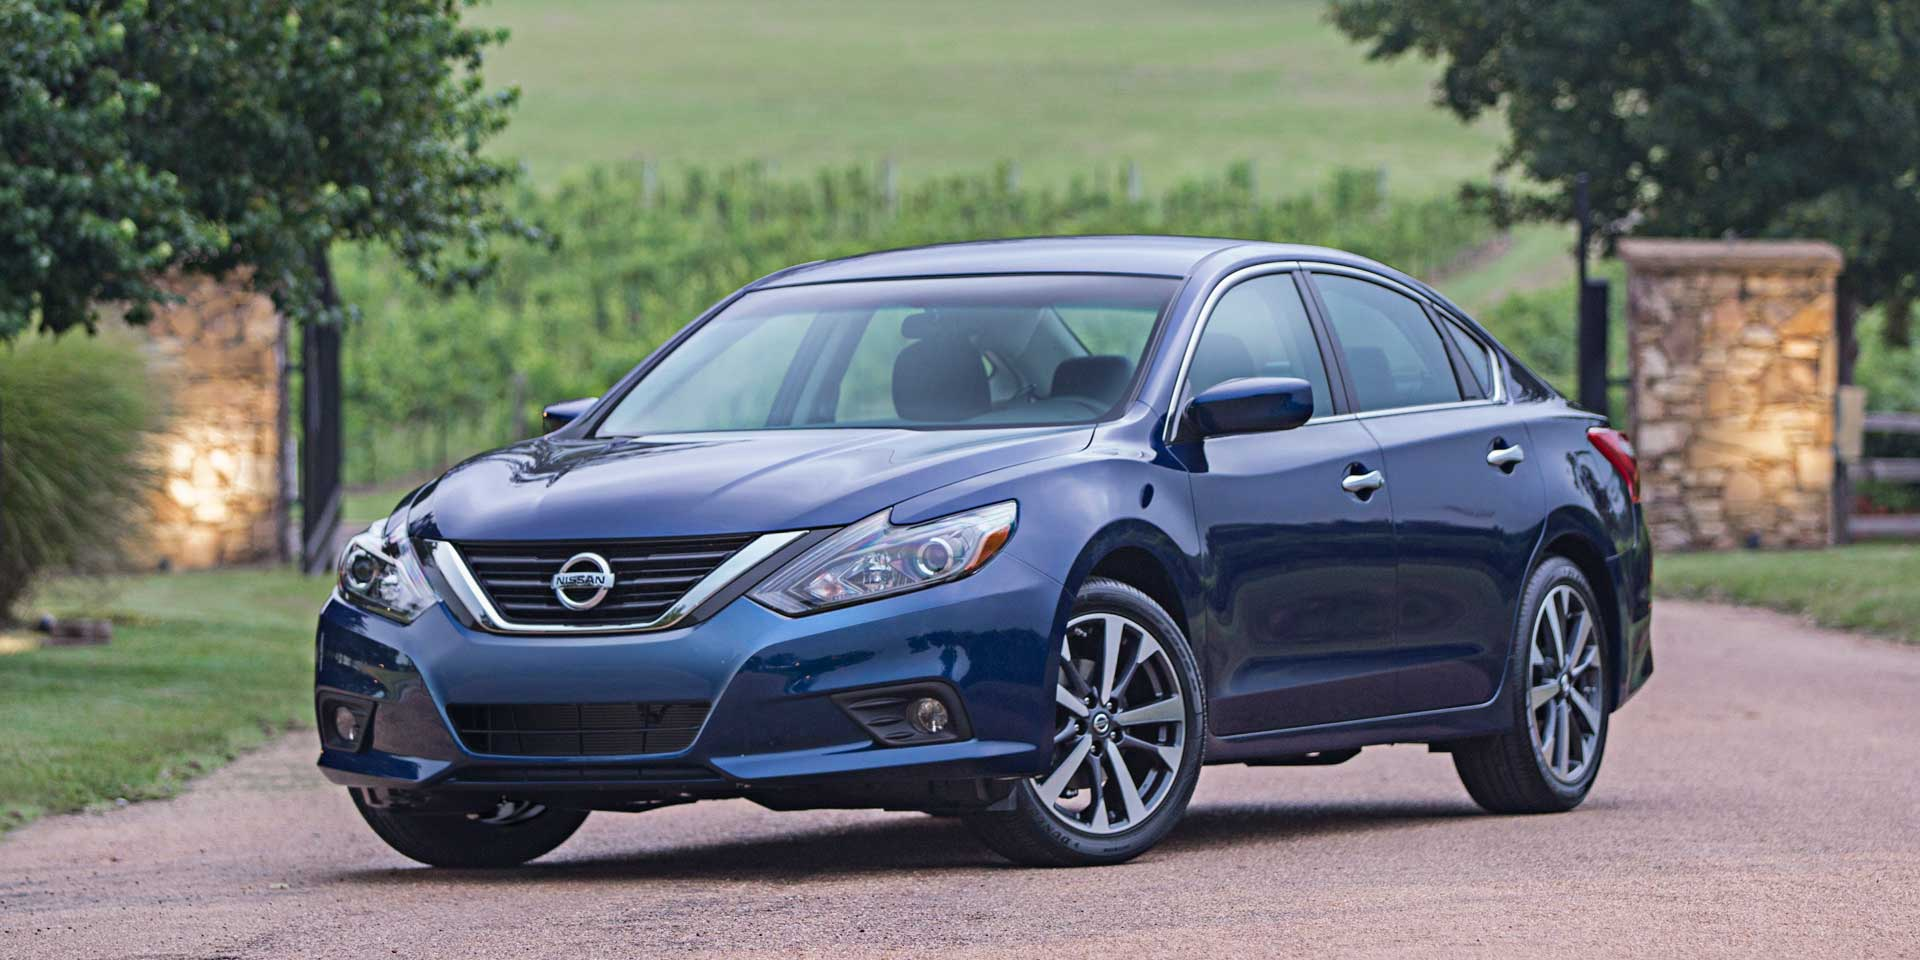 2018 Nissan Altima Vehicles On Display Chicago